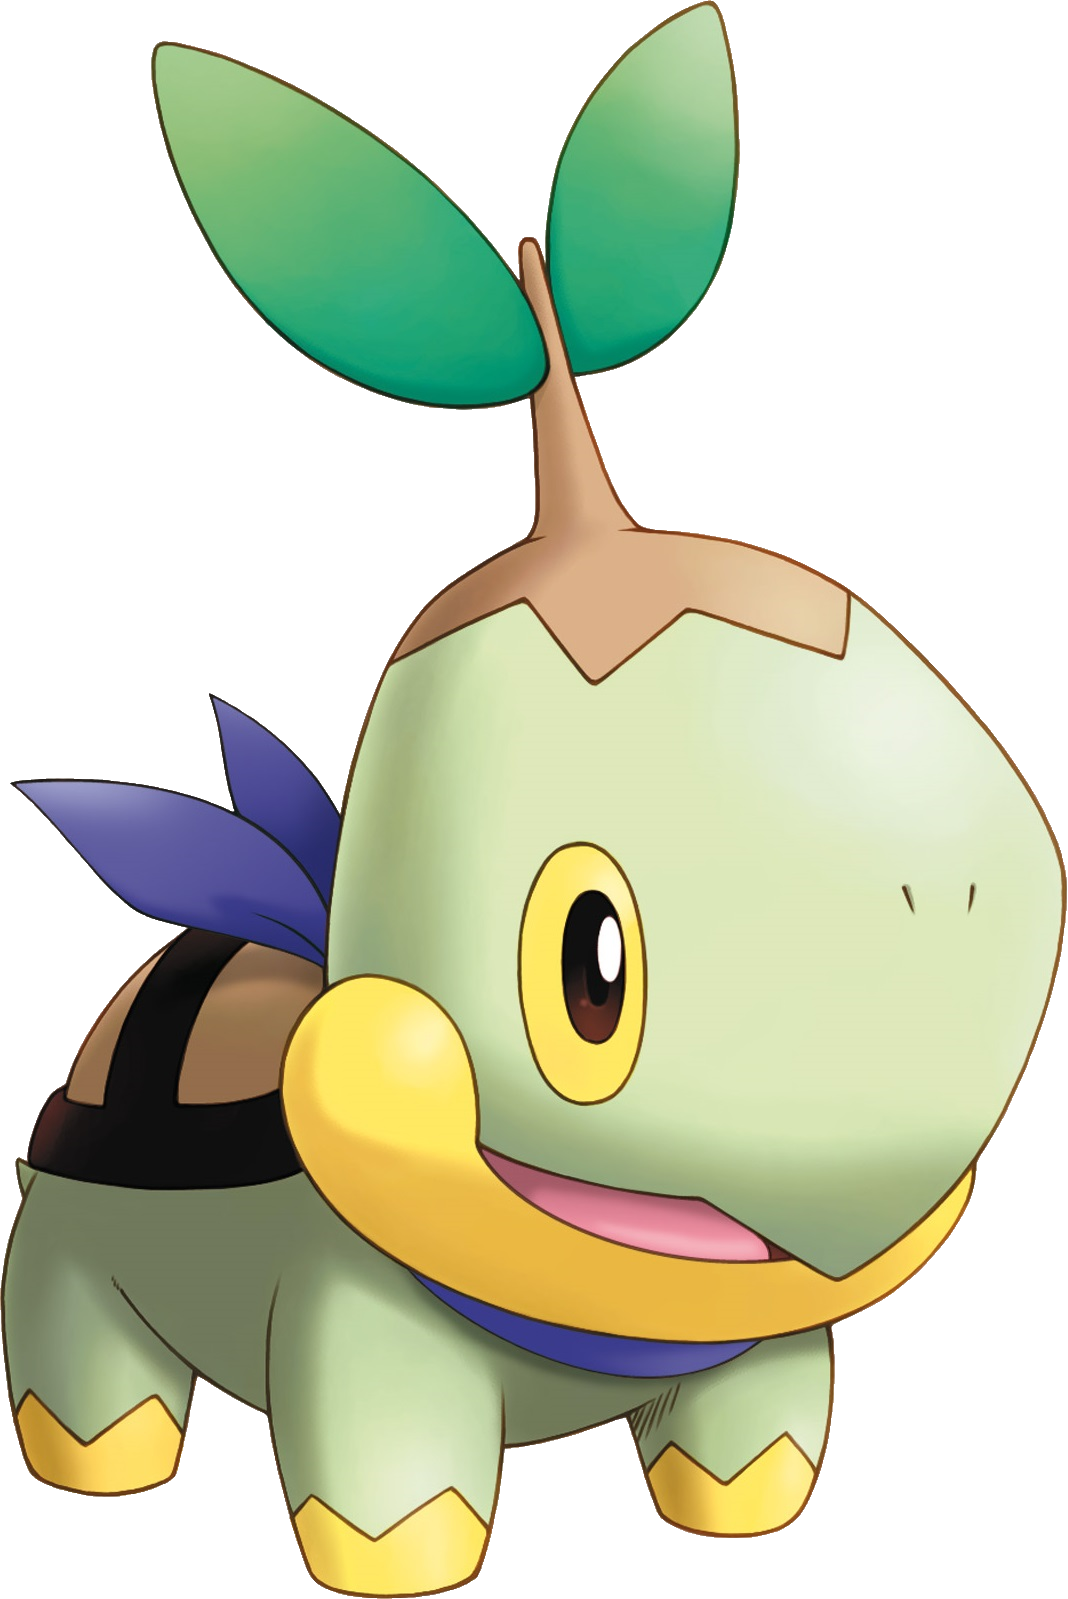 Meowth transparent pokemon mystery dungeon. Image turtwig explorers of